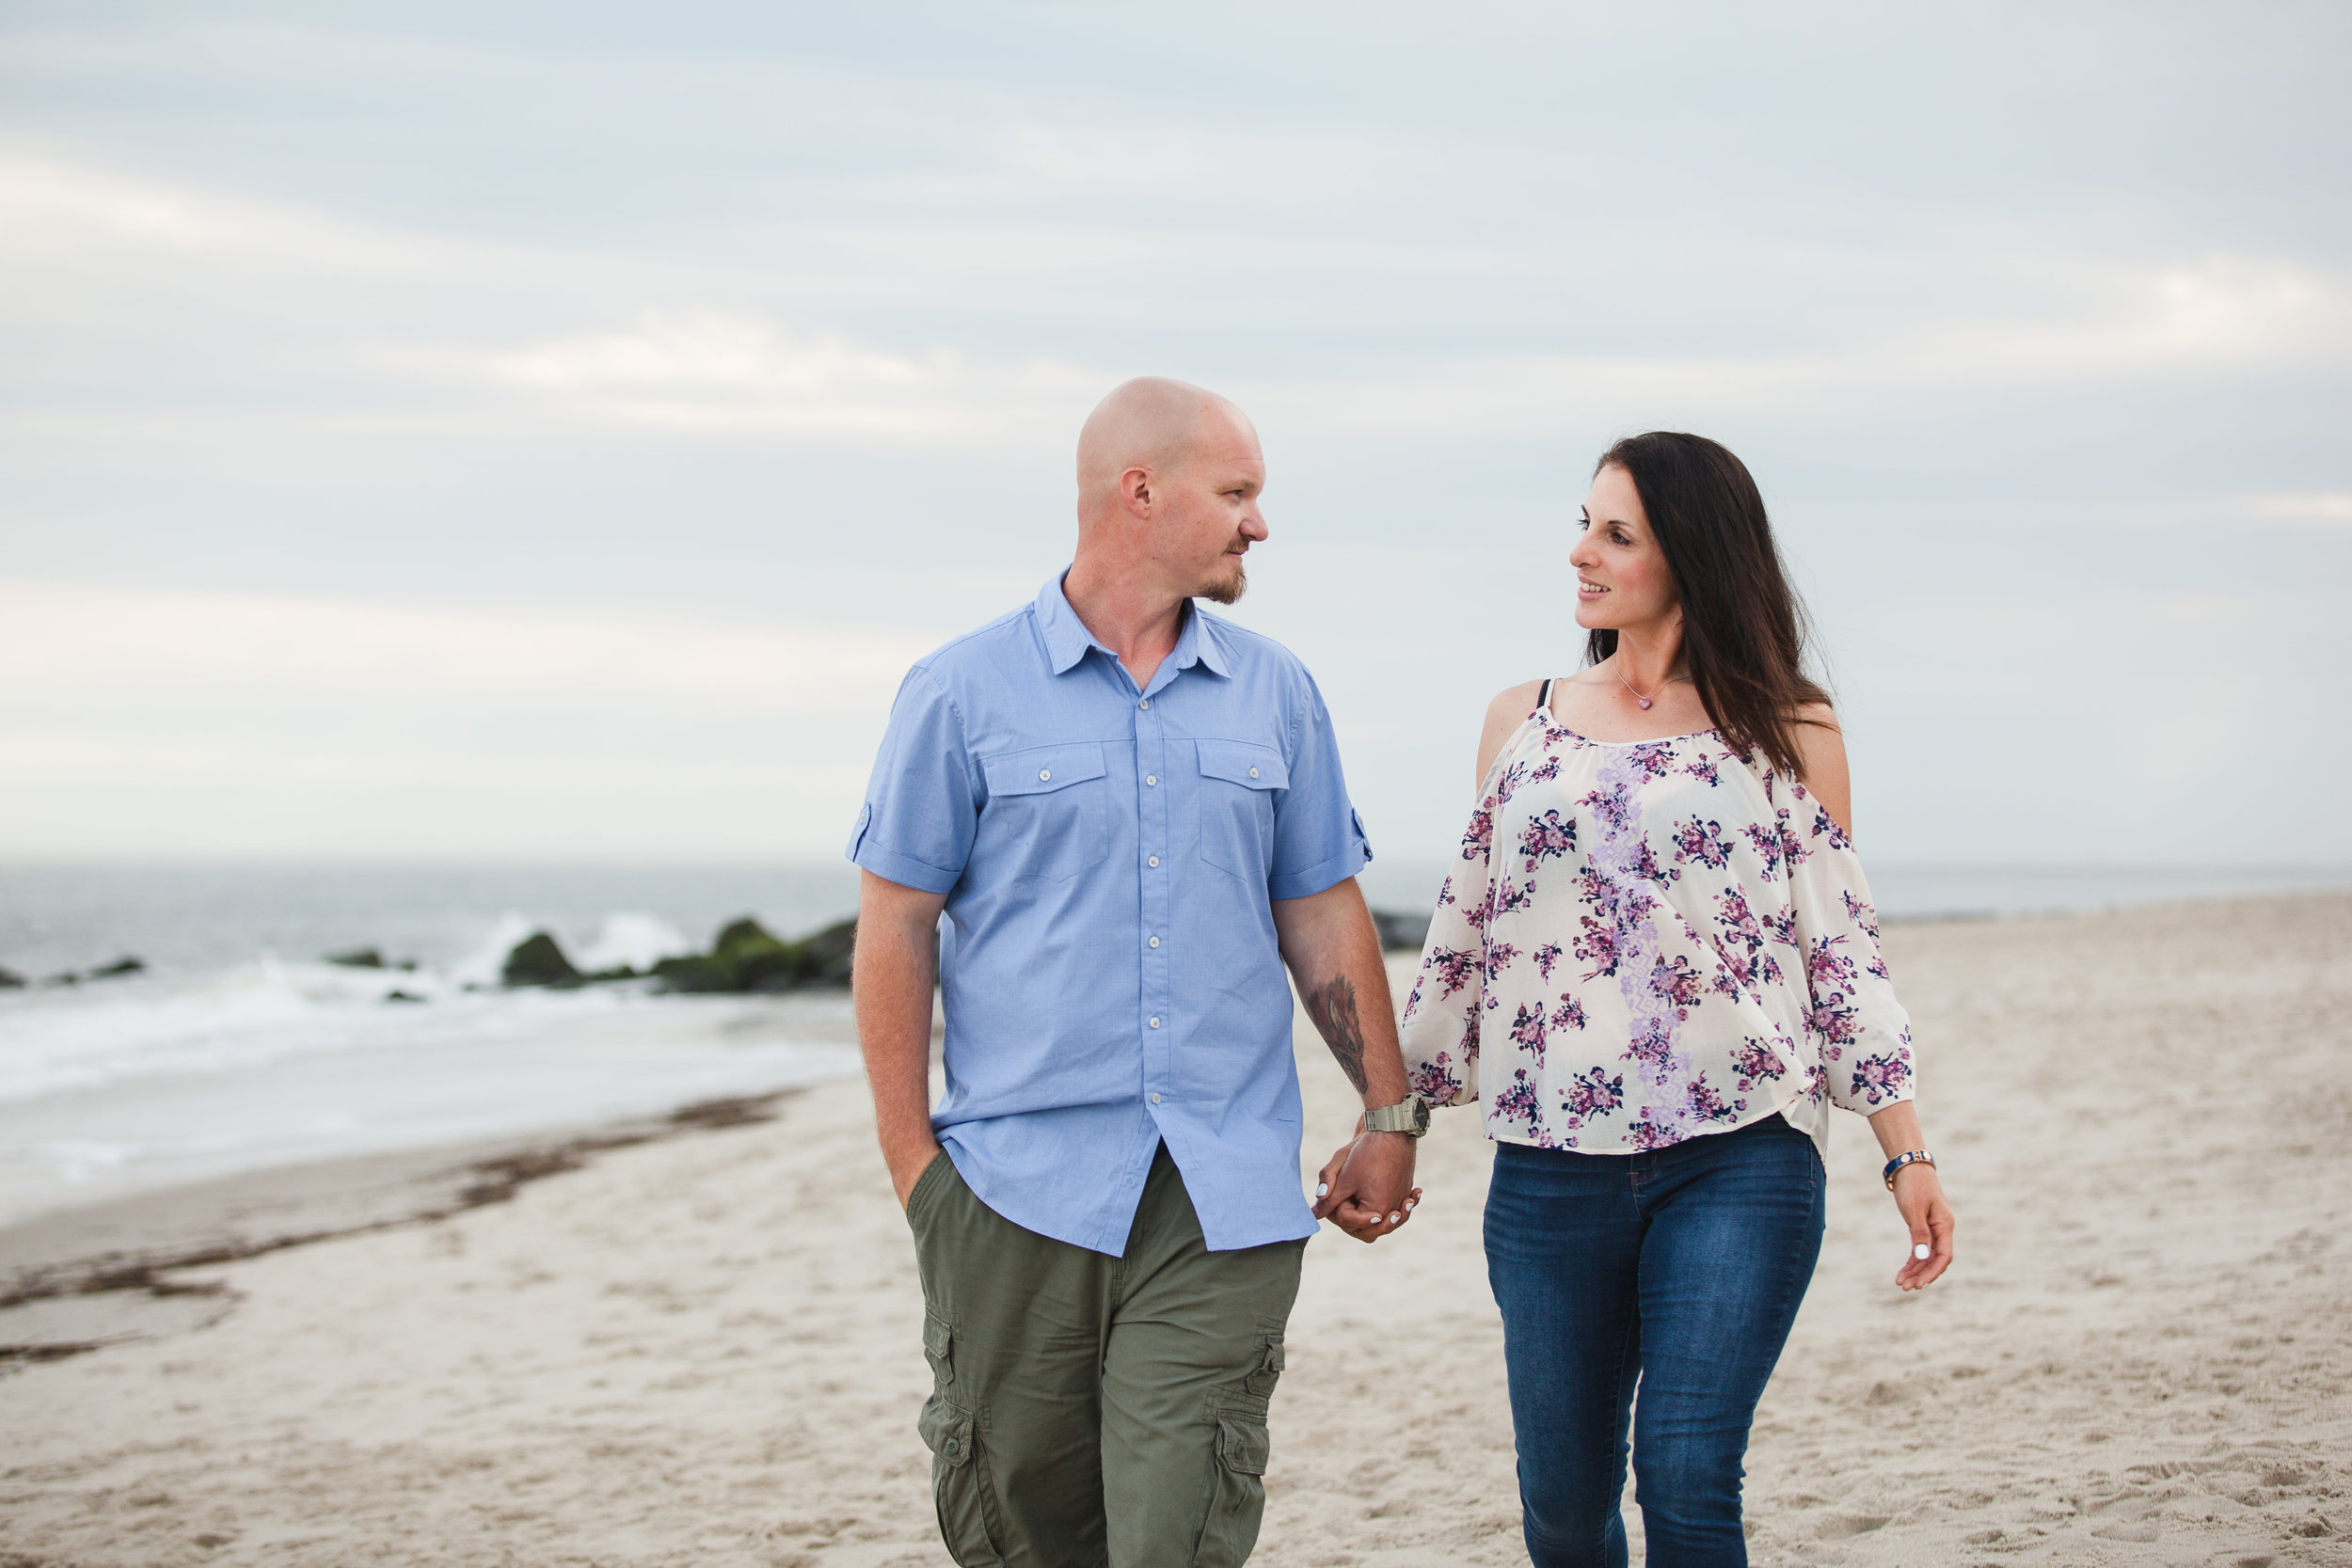 StaceyandJohnEngagementPrints-20.jpg